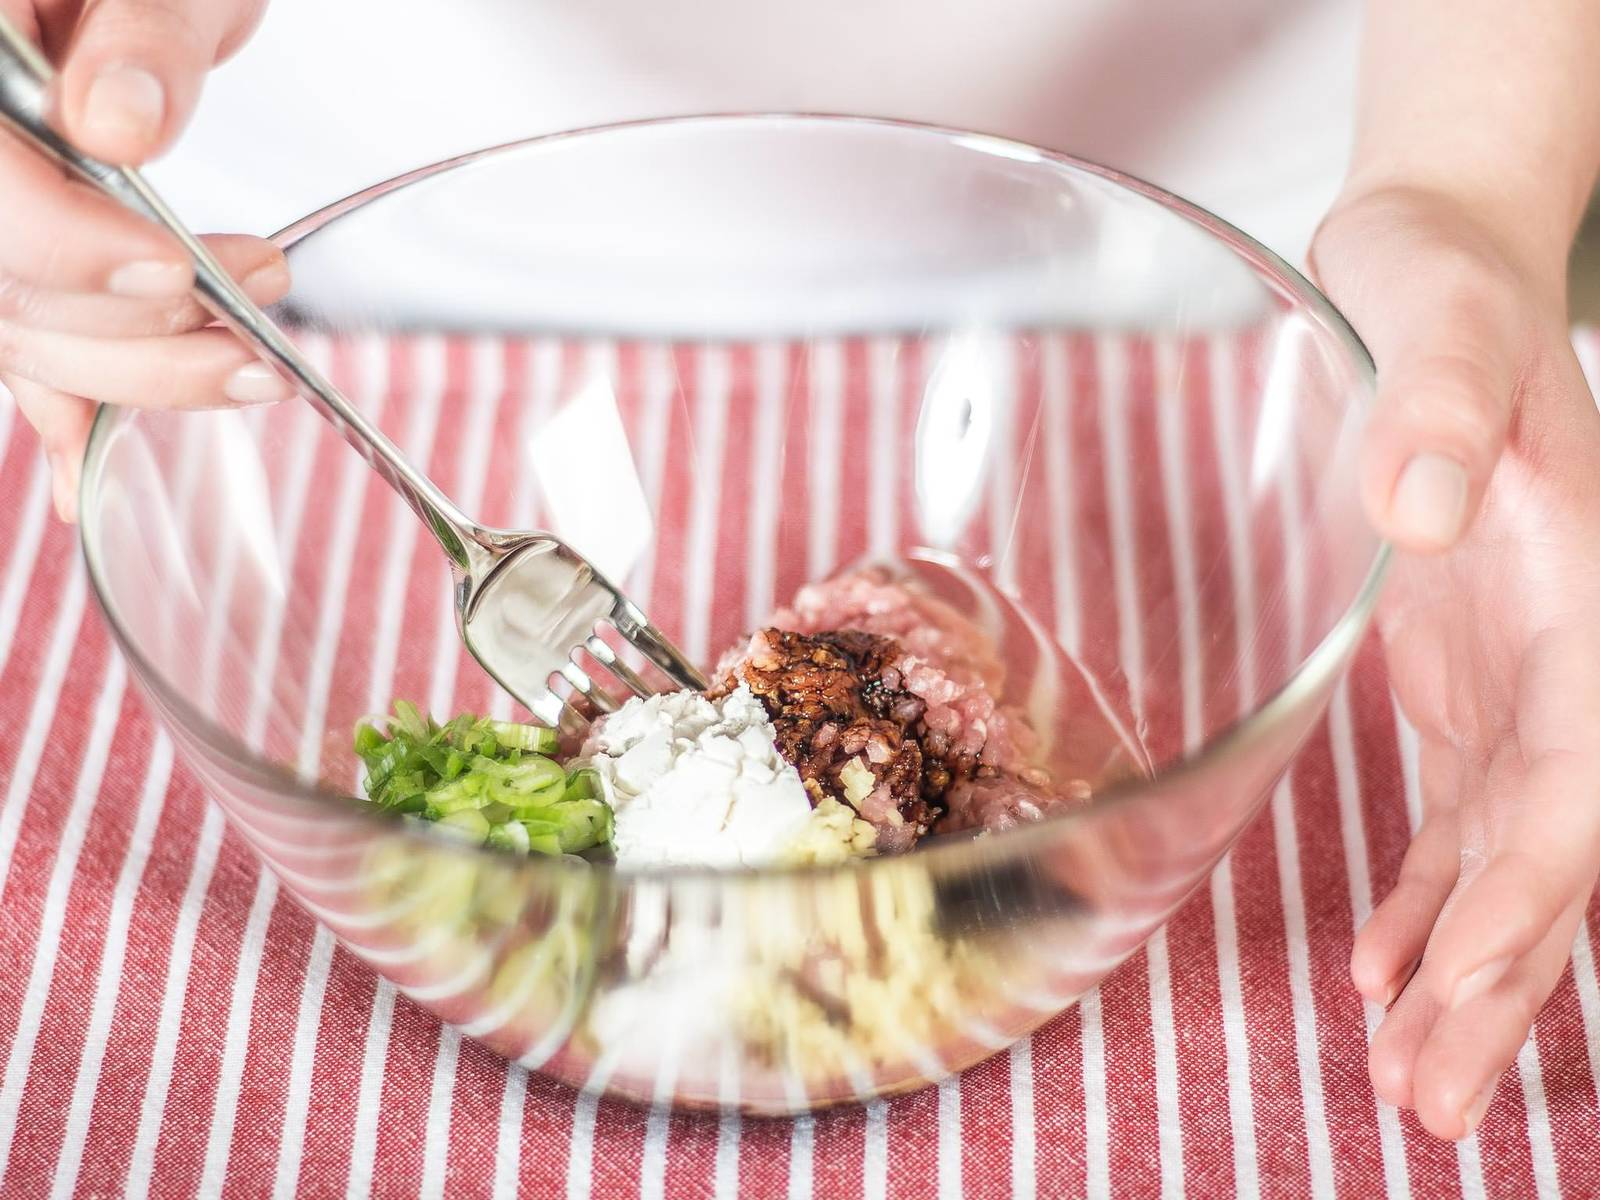 Mix ground meat, chopped spring onion, chopped ginger, egg white, cornstarch, soy sauce, sugar, and salt well with a fork until an even consistency is formed.